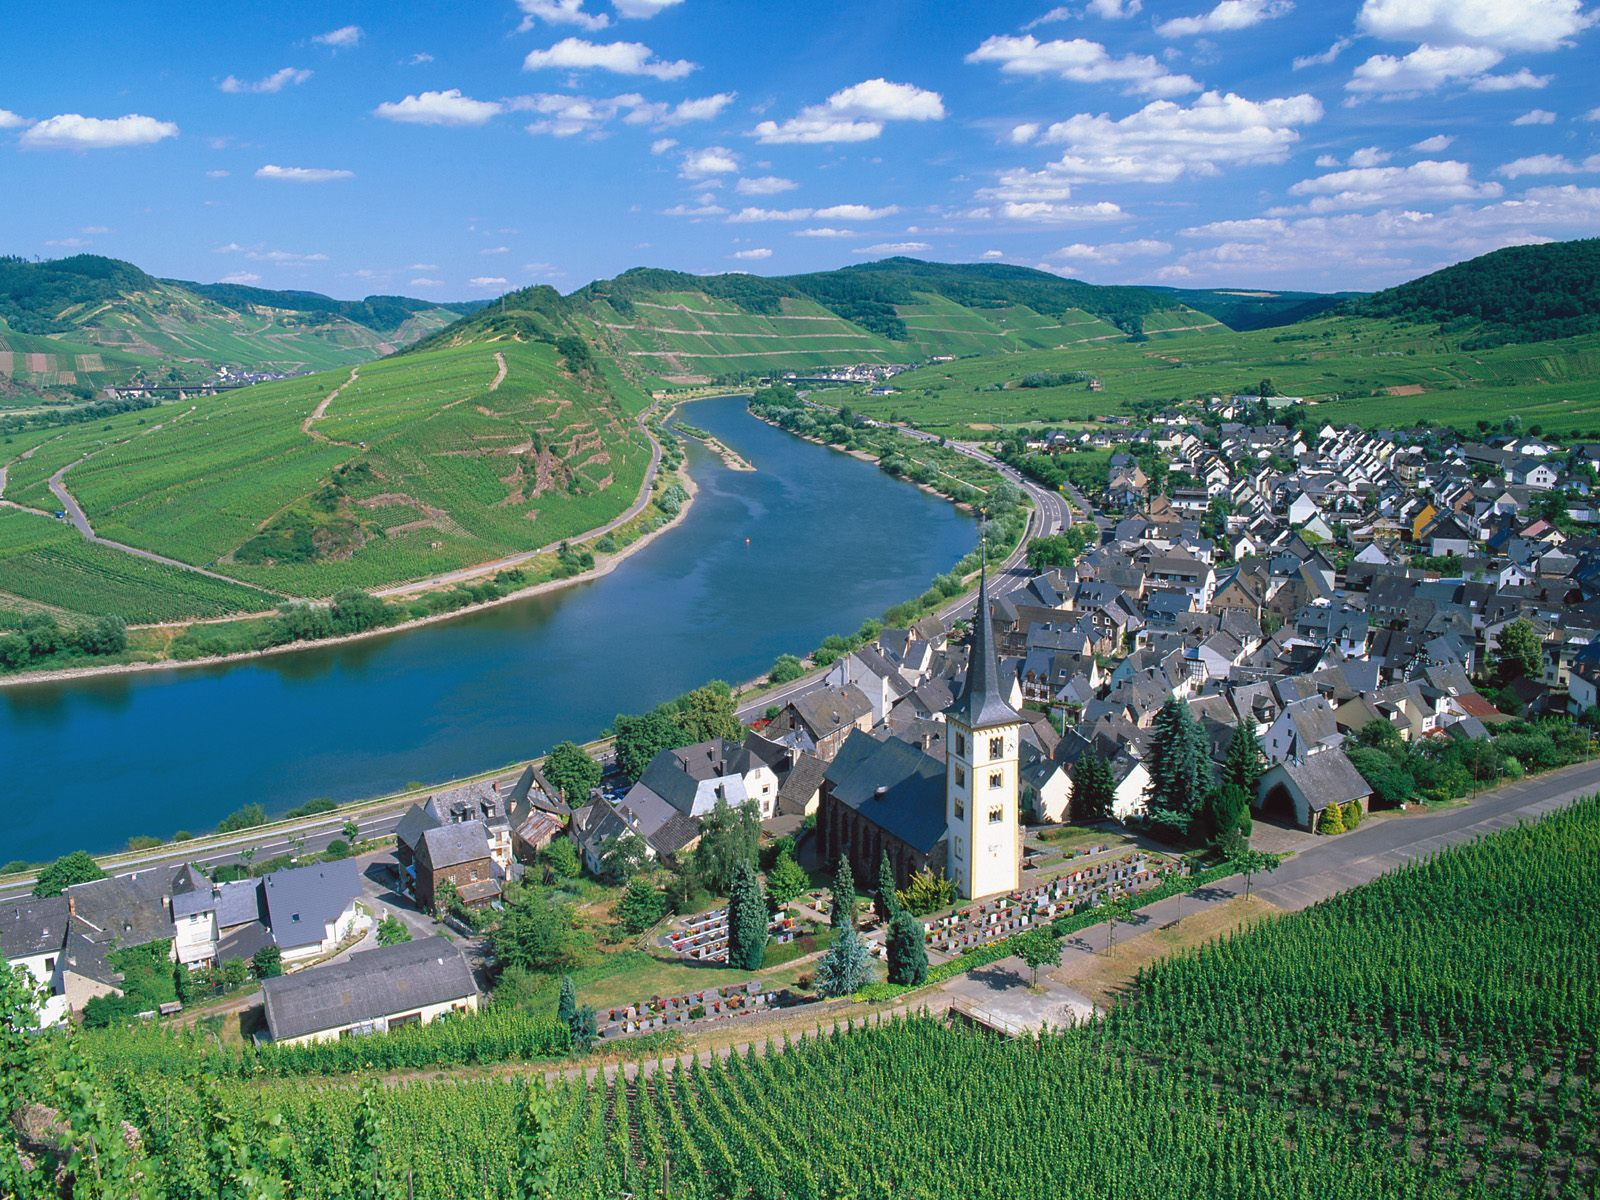 Moselle River Germany picture City of Bremm and Moselle River Germany 1600x1200